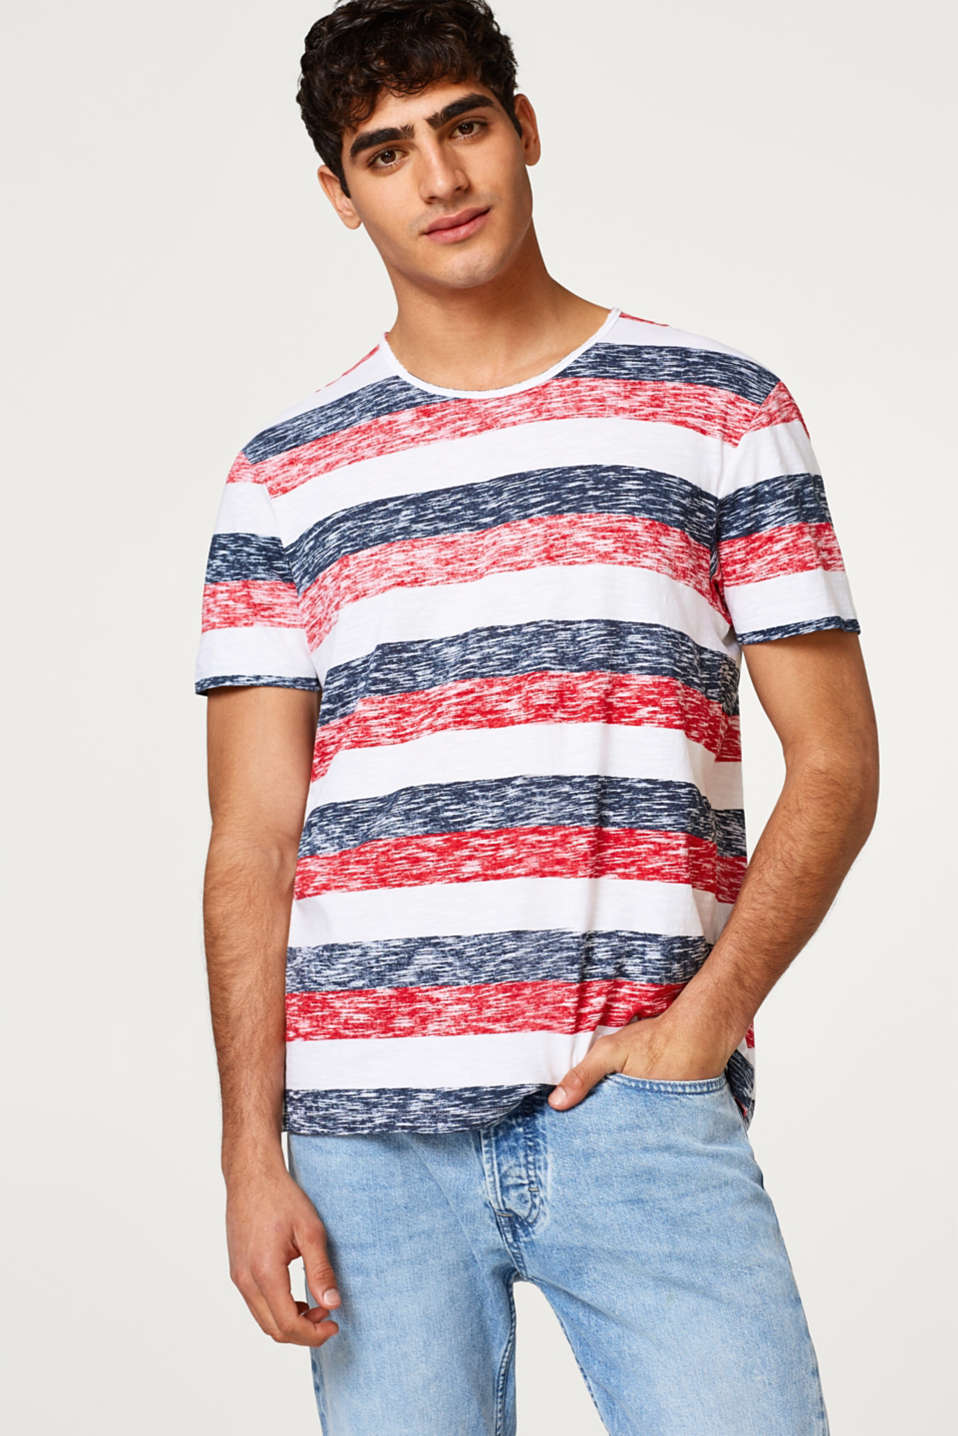 edc - Jersey shirt with an inside-out print composed of cotton